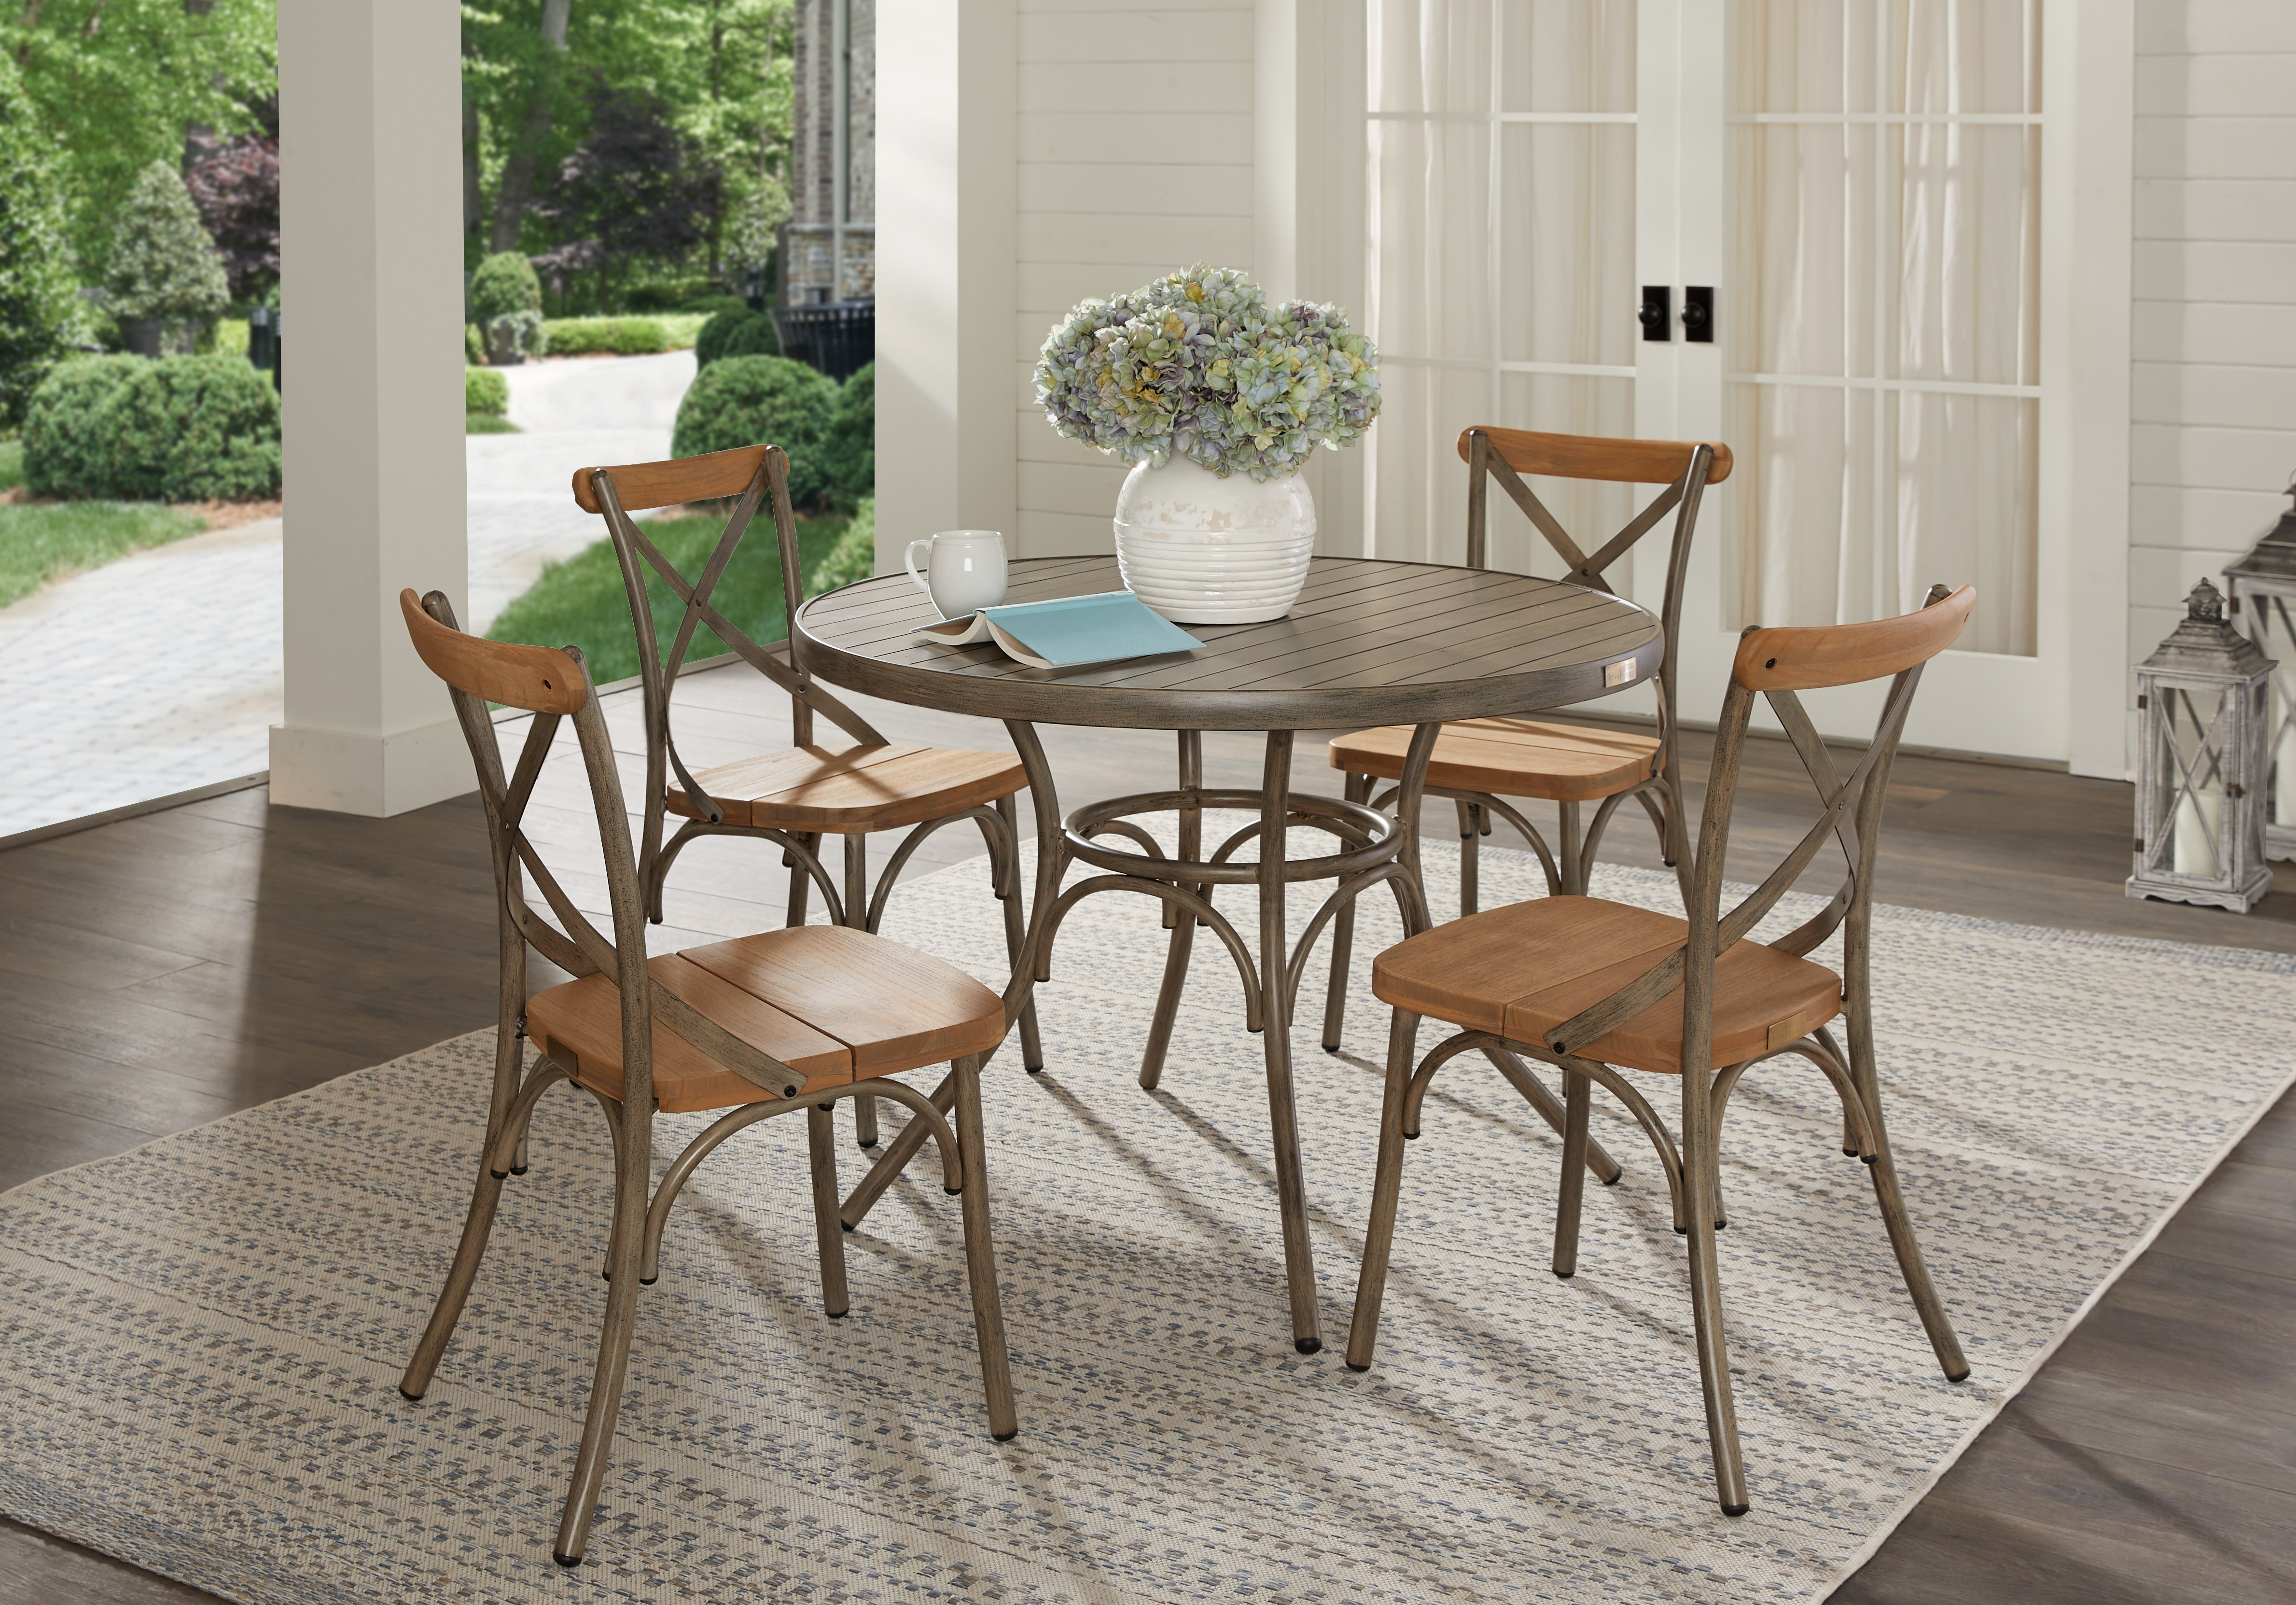 Round Outdoor Dining Set - Outdoor Dining Sets Dark Wood